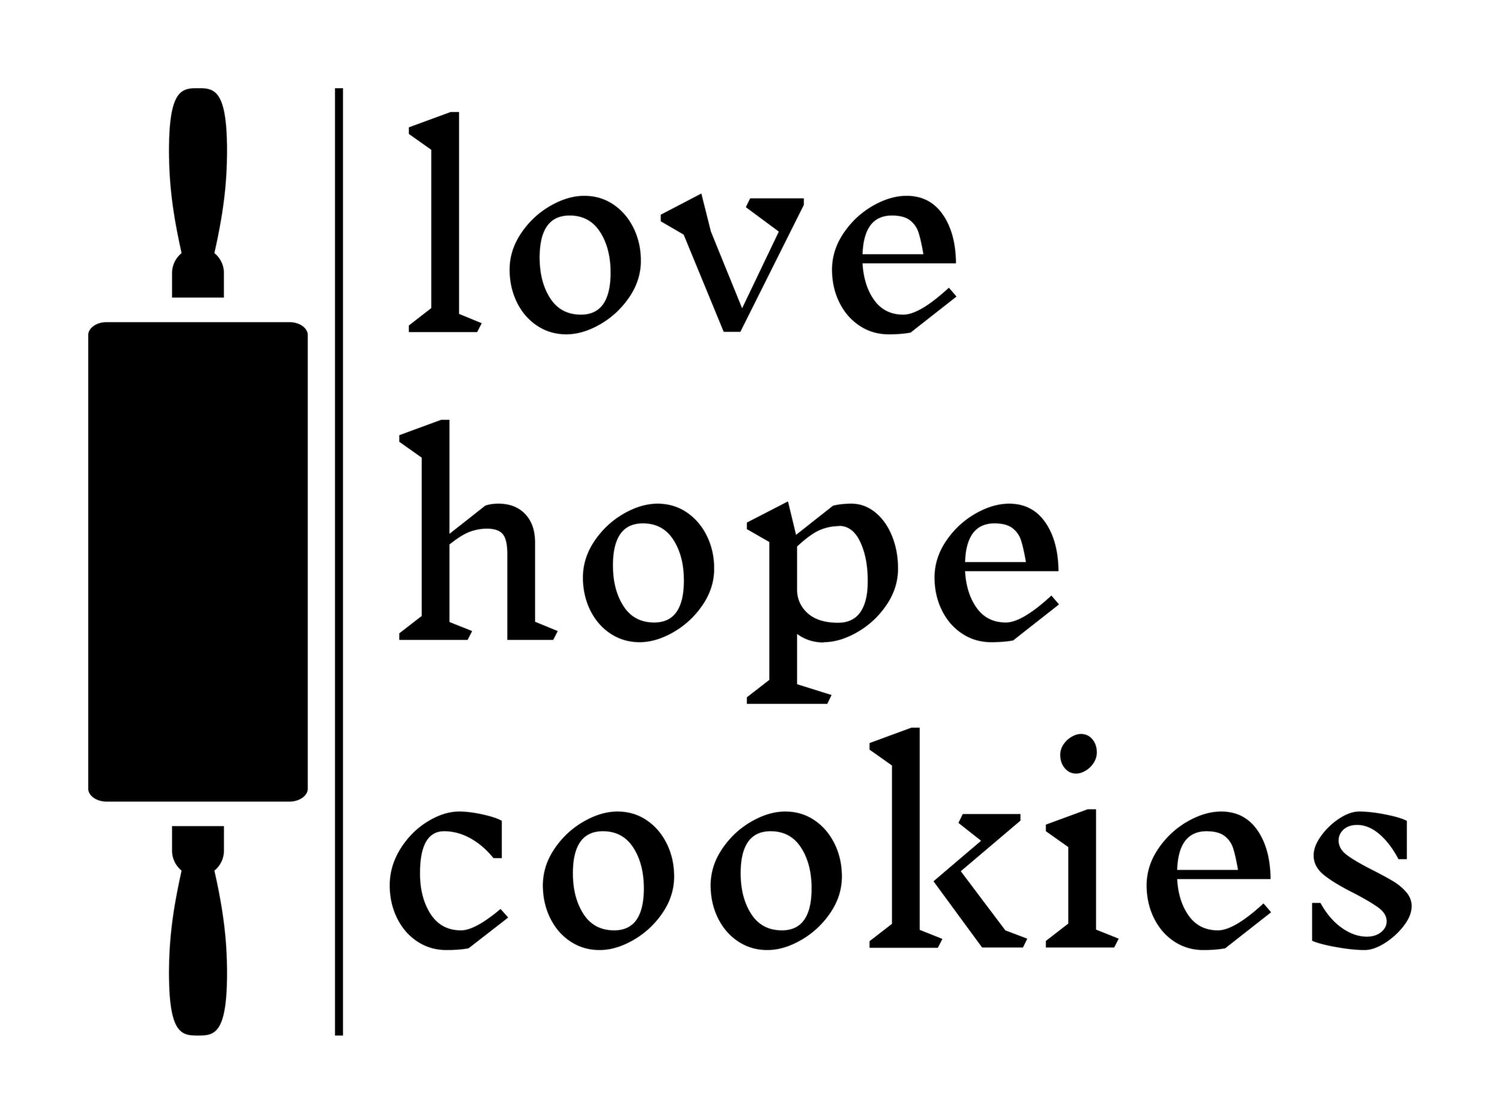 love hope cookies